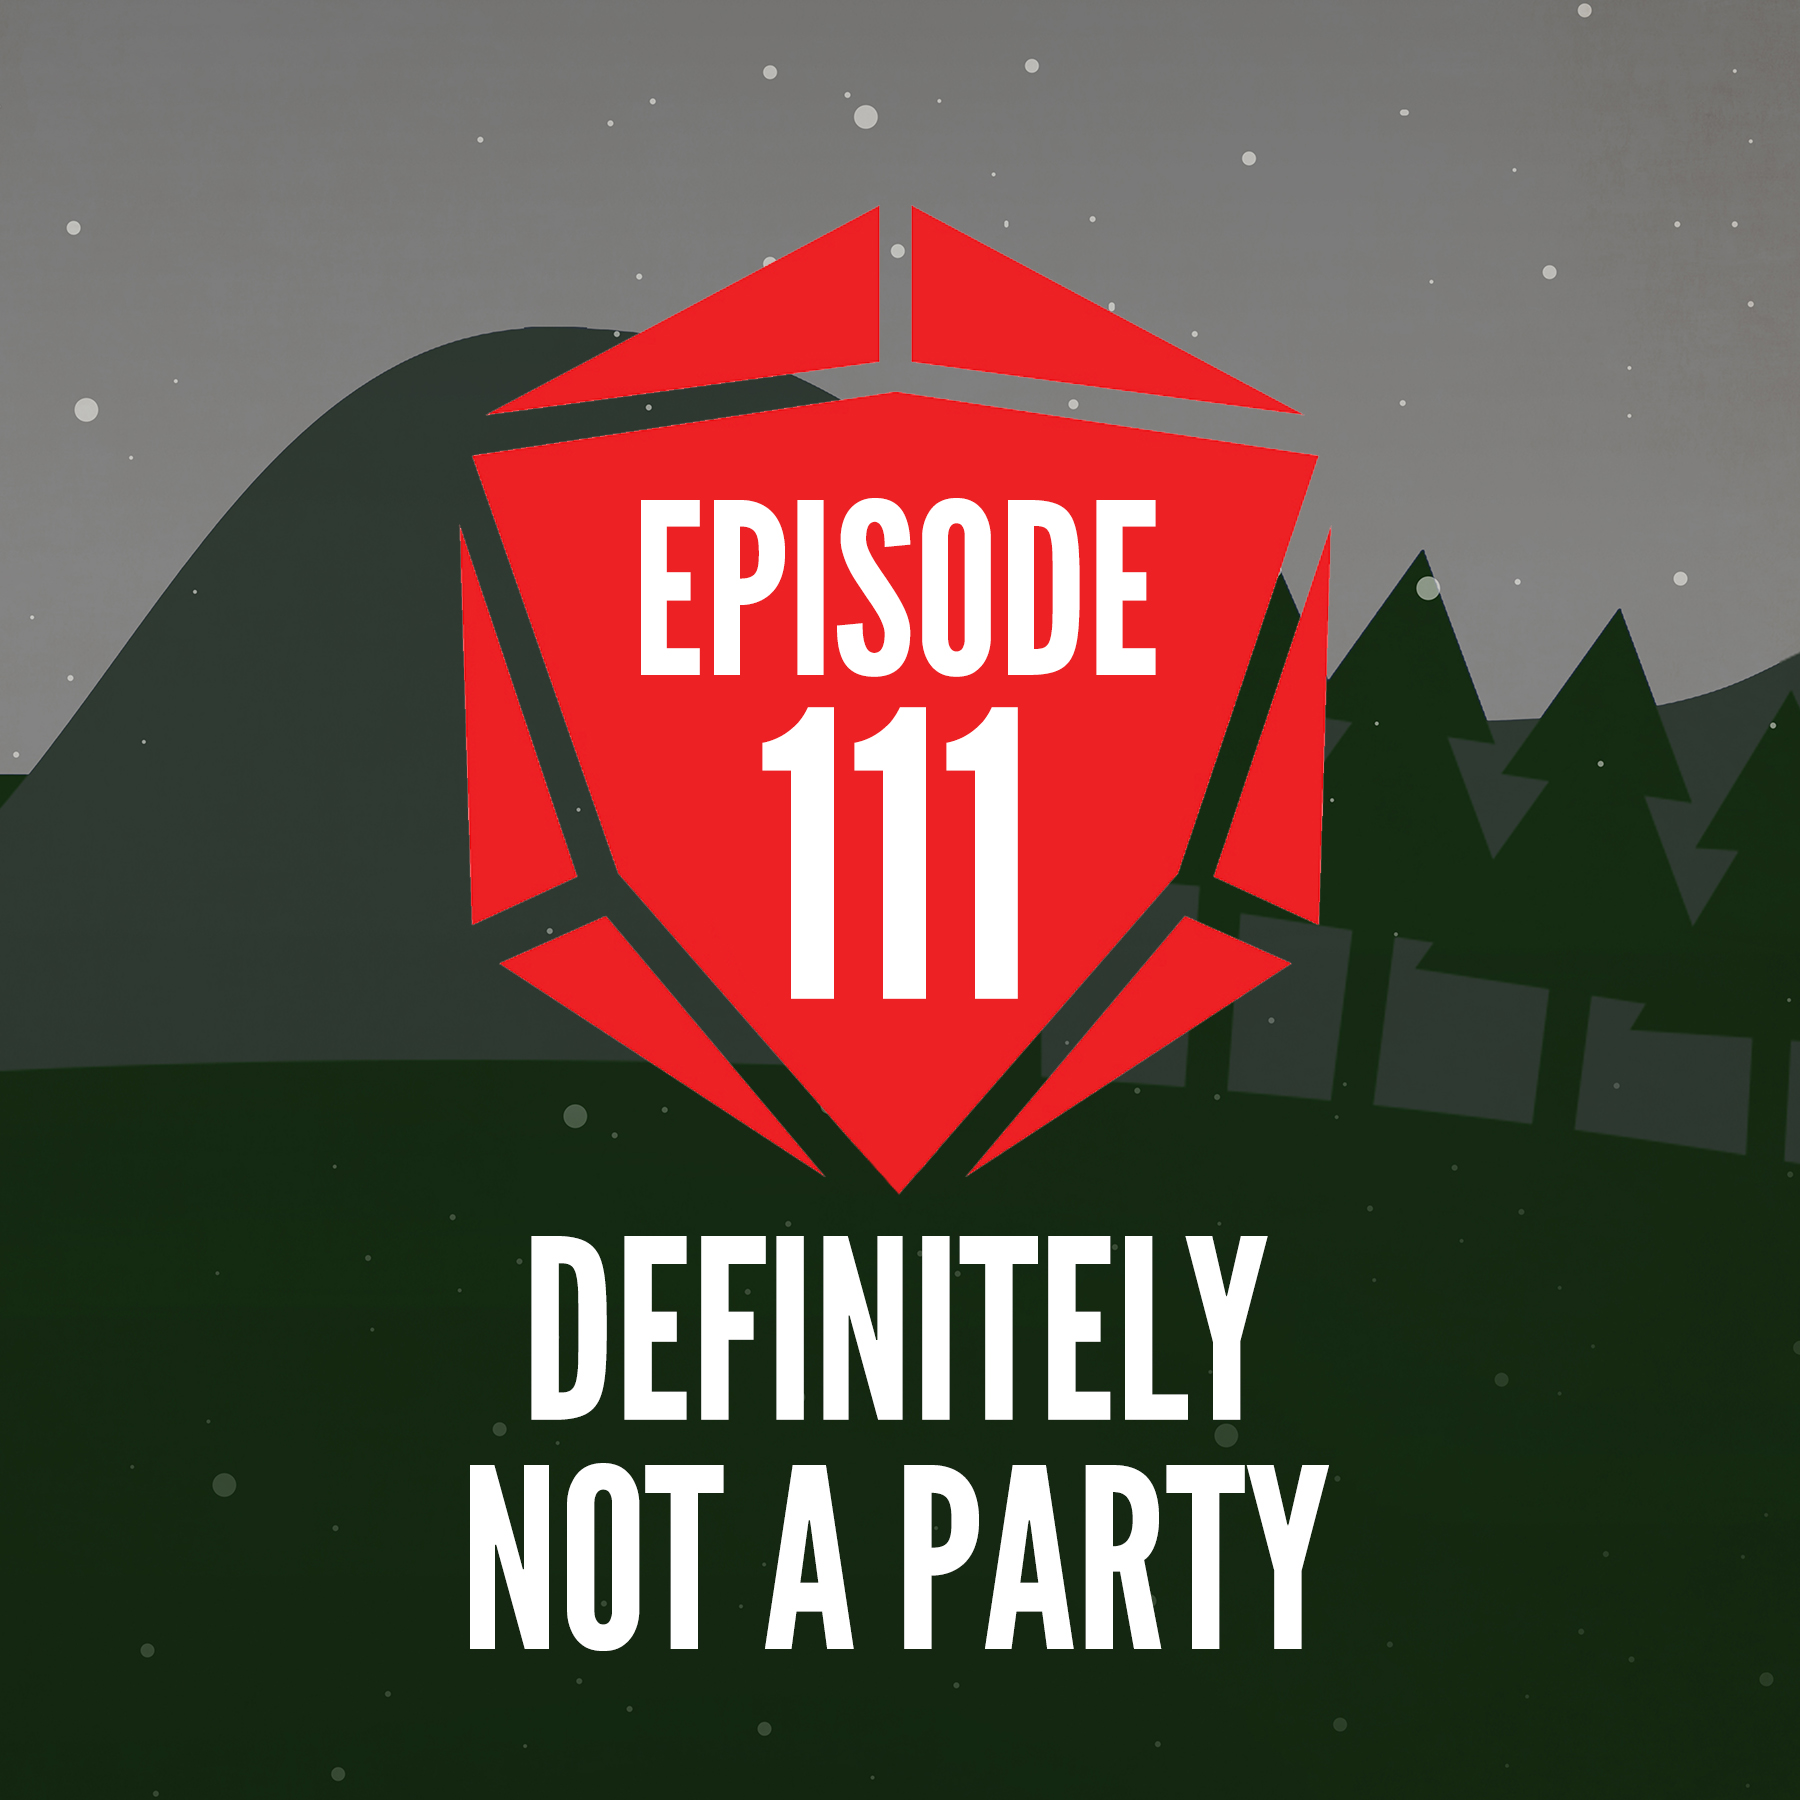 Episode 111: Definitely Not a Party